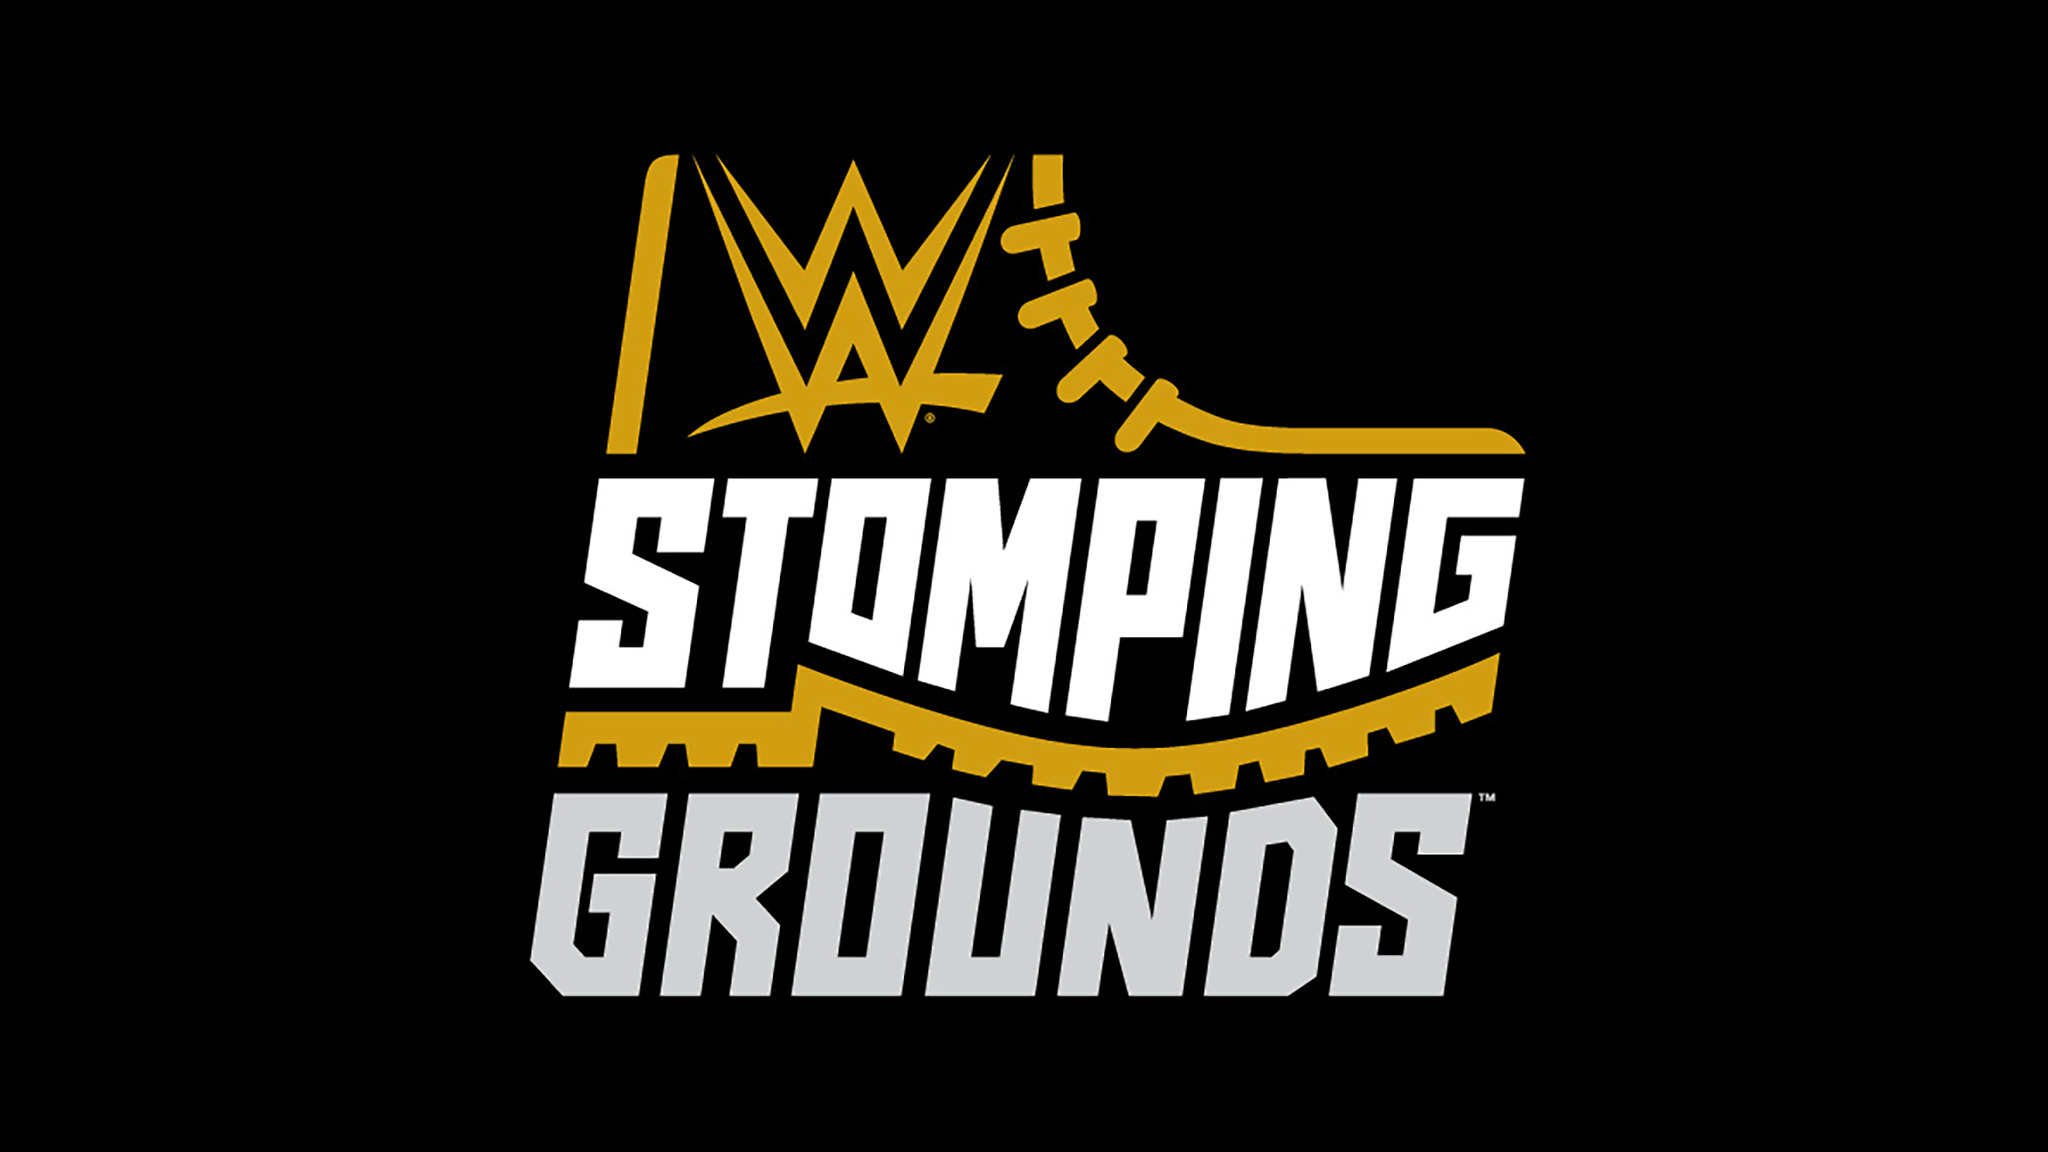 WWE Stomping Grounds Brock Lesnar Cash in his Money Bank